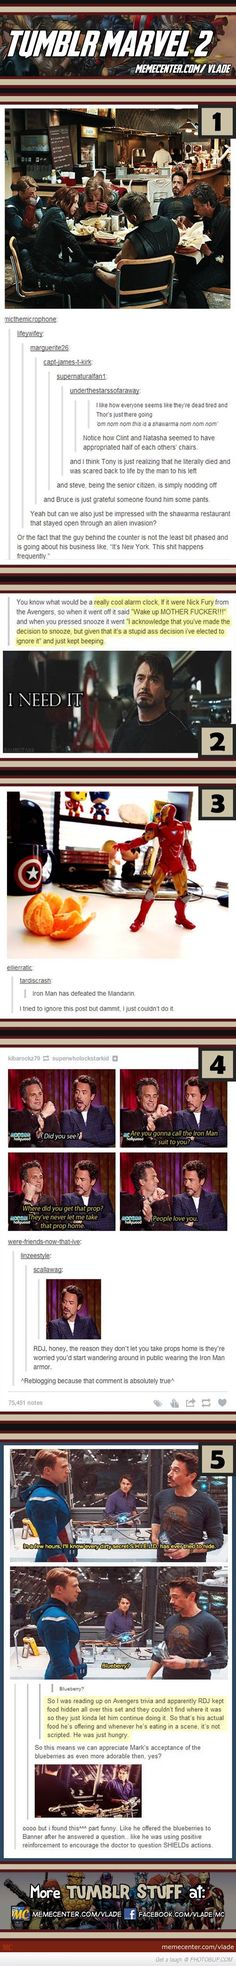 Tumblr Marvel...